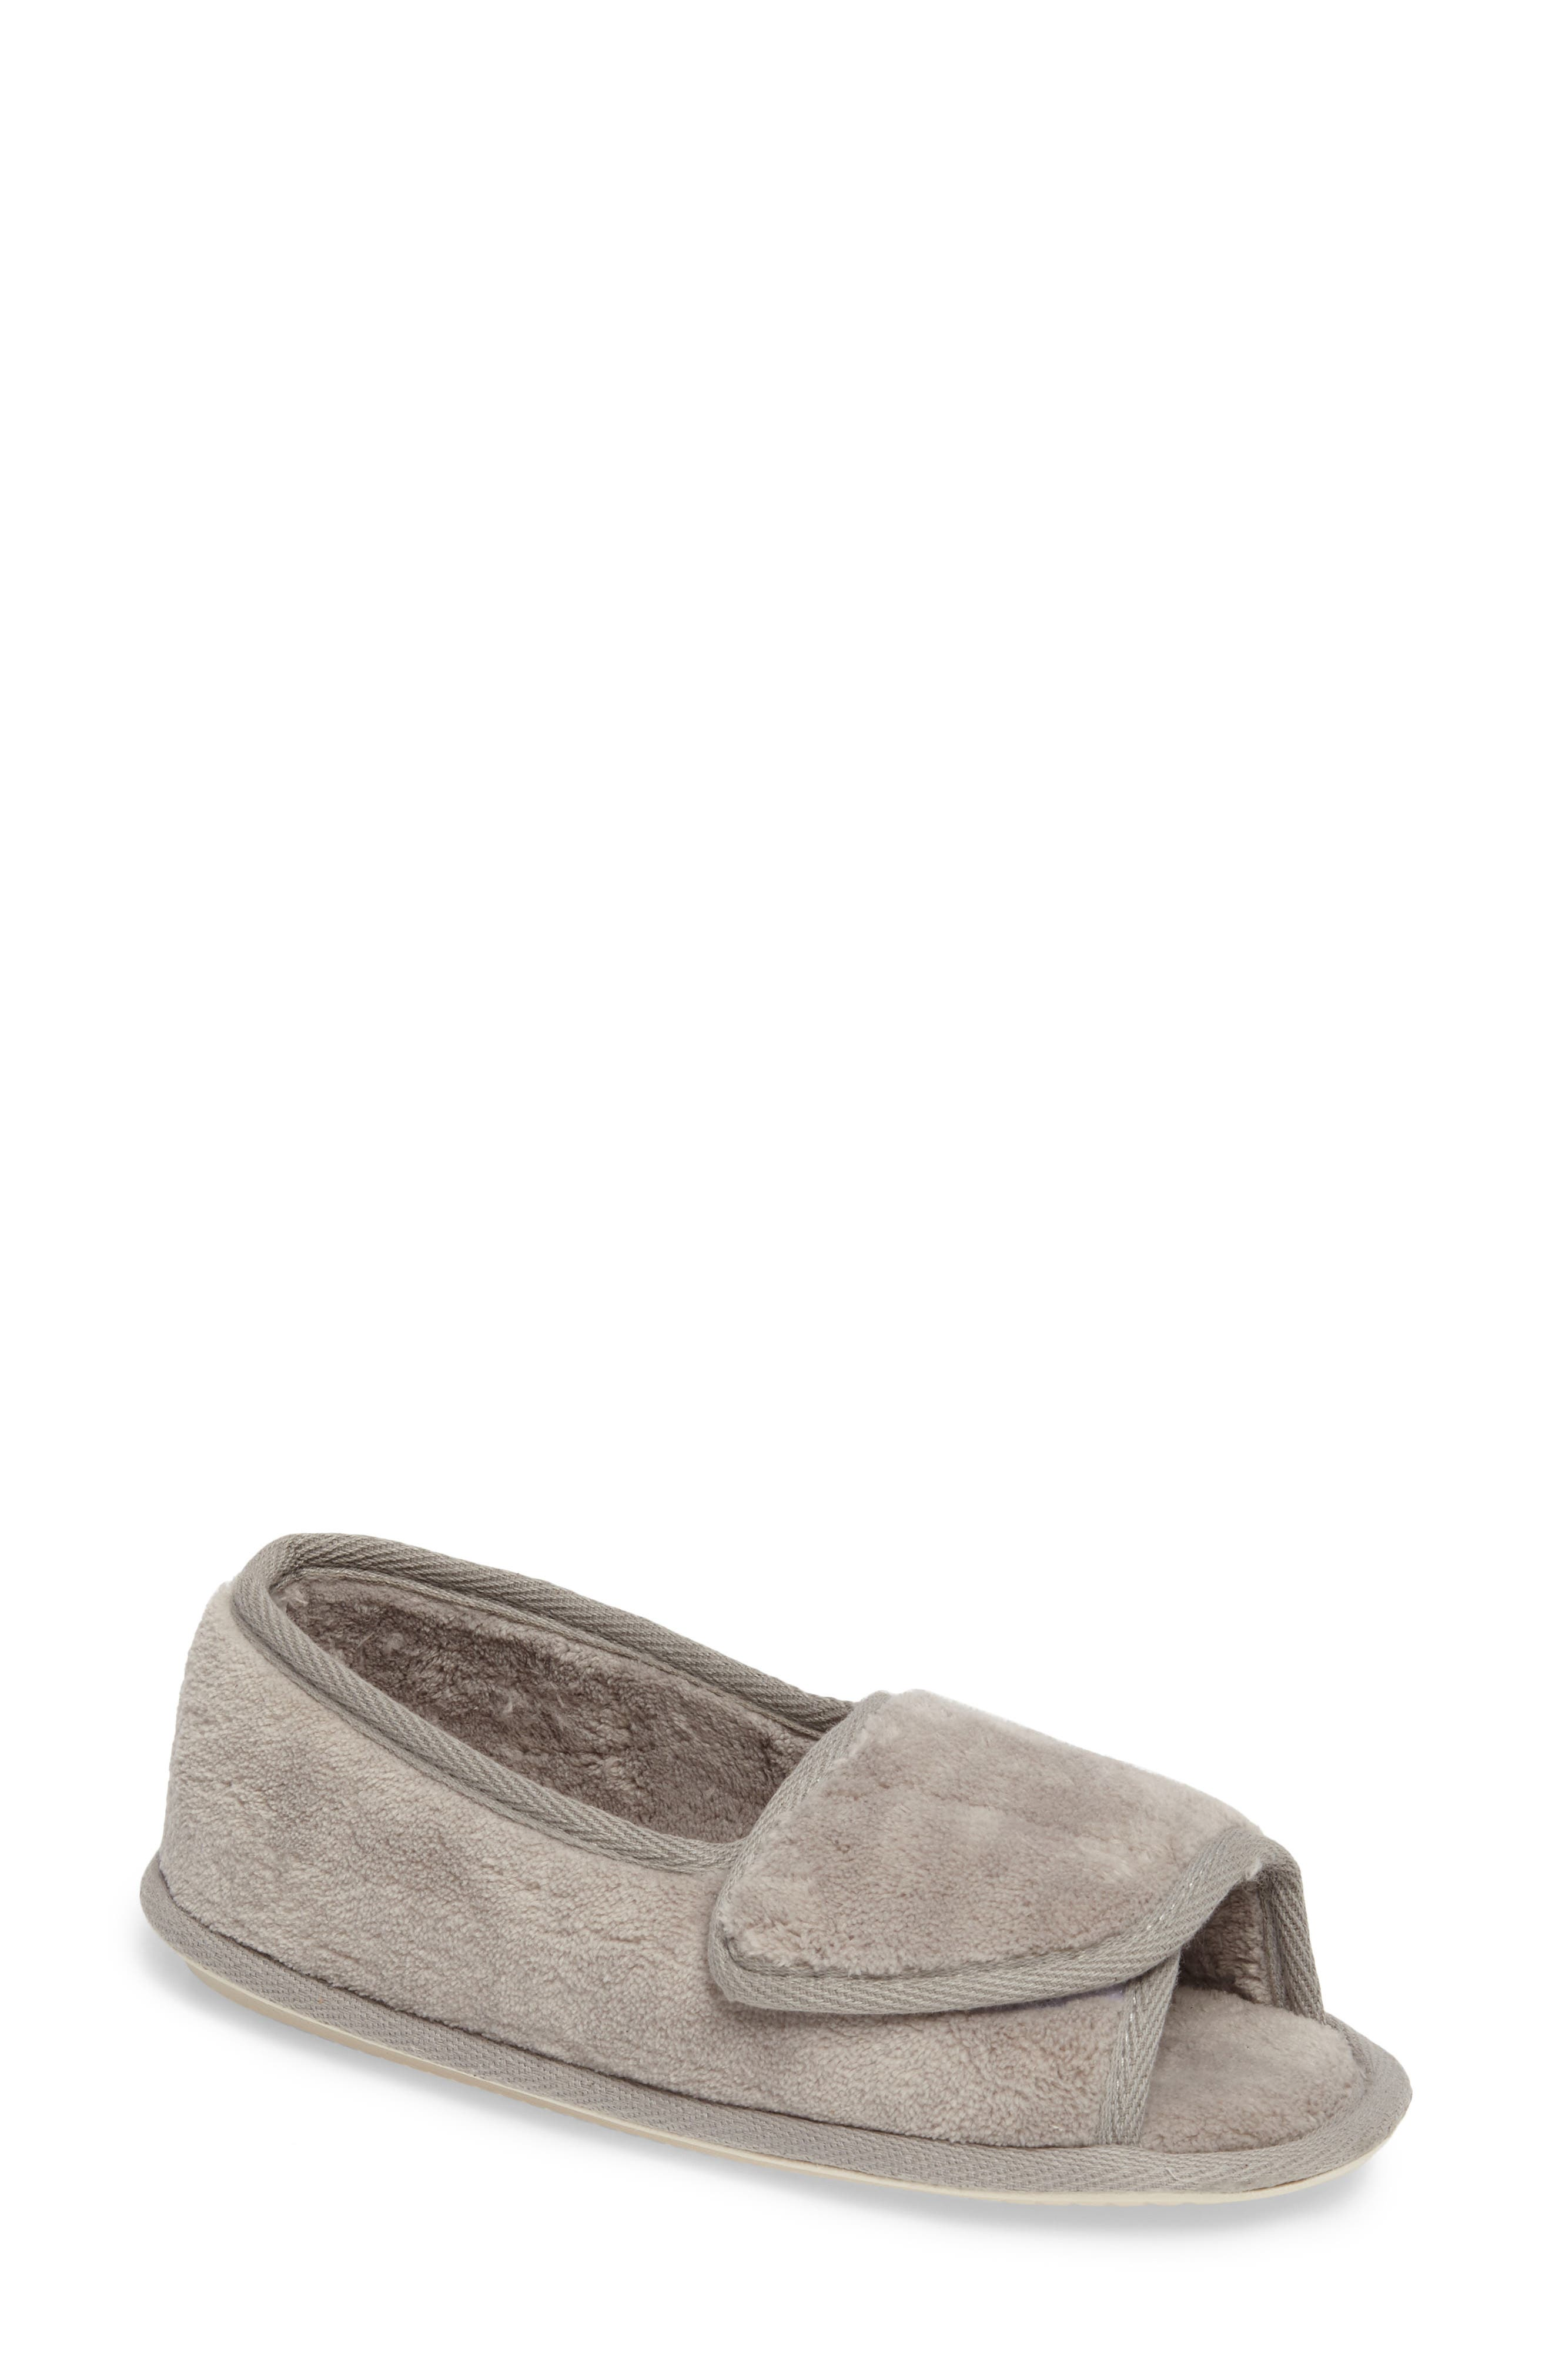 Tara II Slipper,                         Main,                         color, GRAY FABRIC